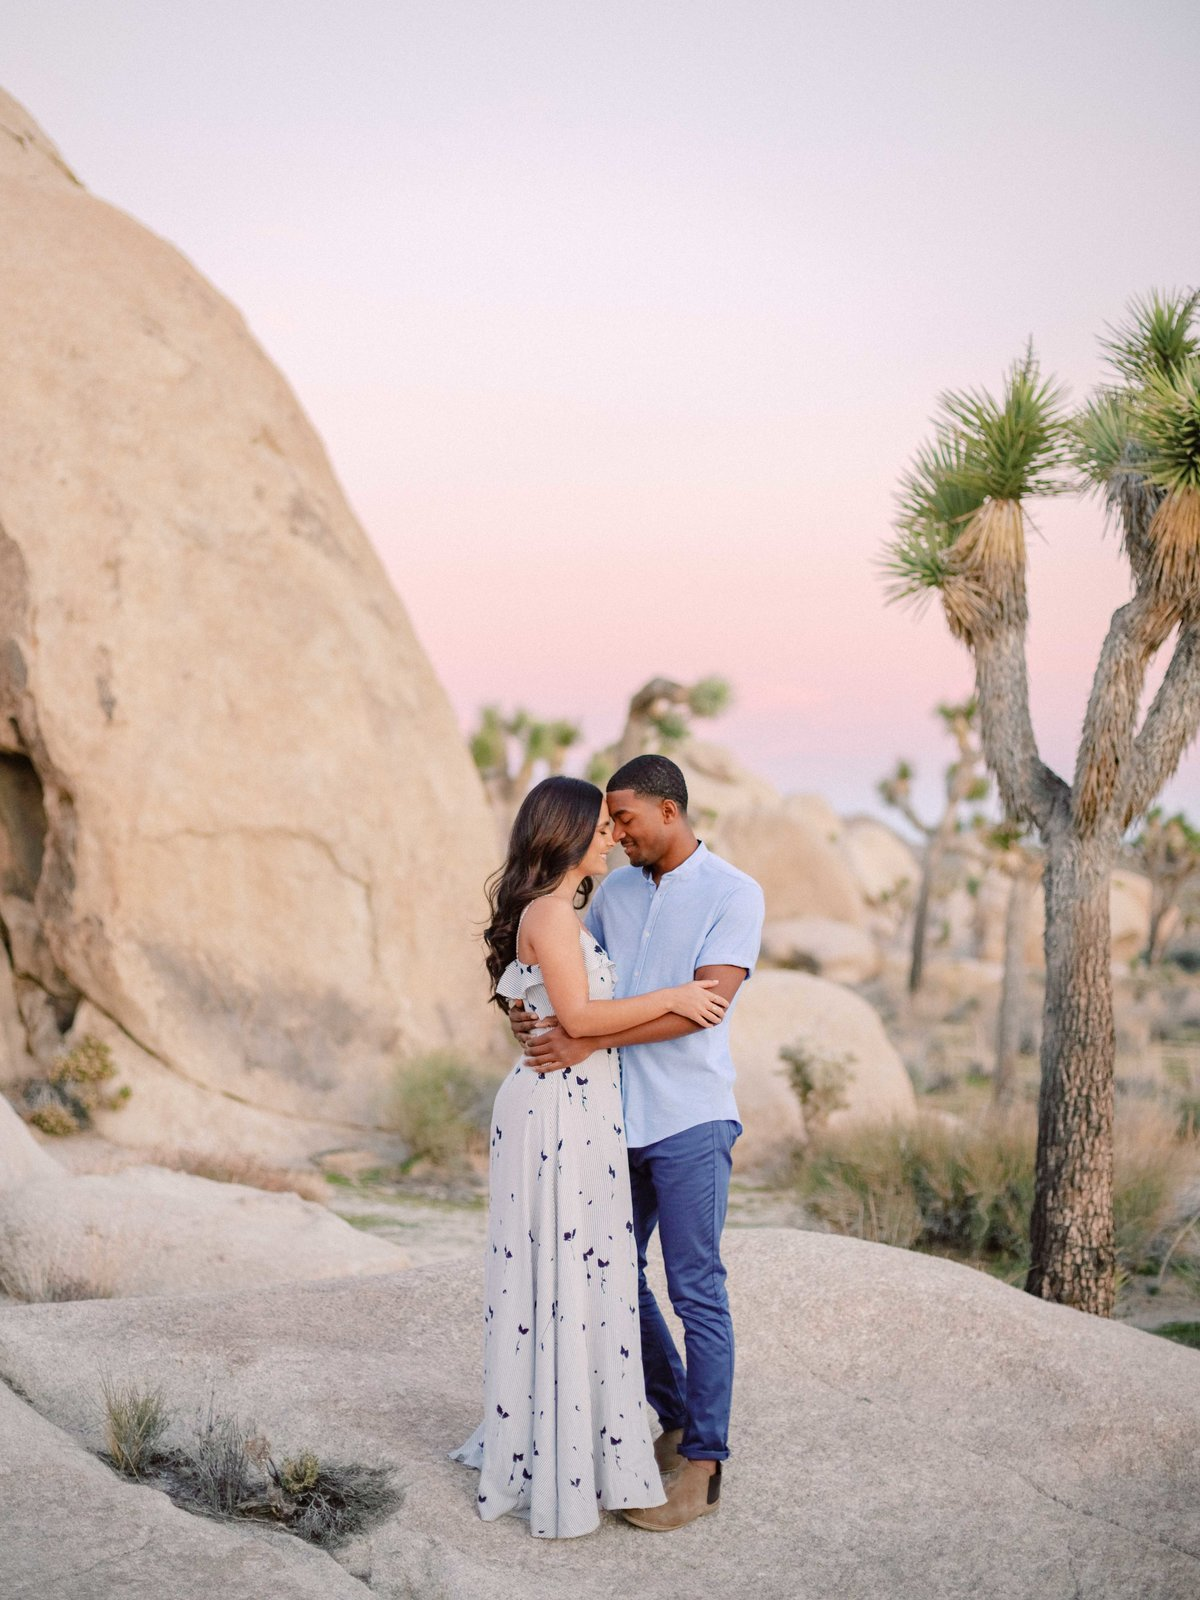 Babsie-Ly-Photography-Joshua-Tree-Engagement-Photography-Fine-Art-Film-MarinaEvan-012